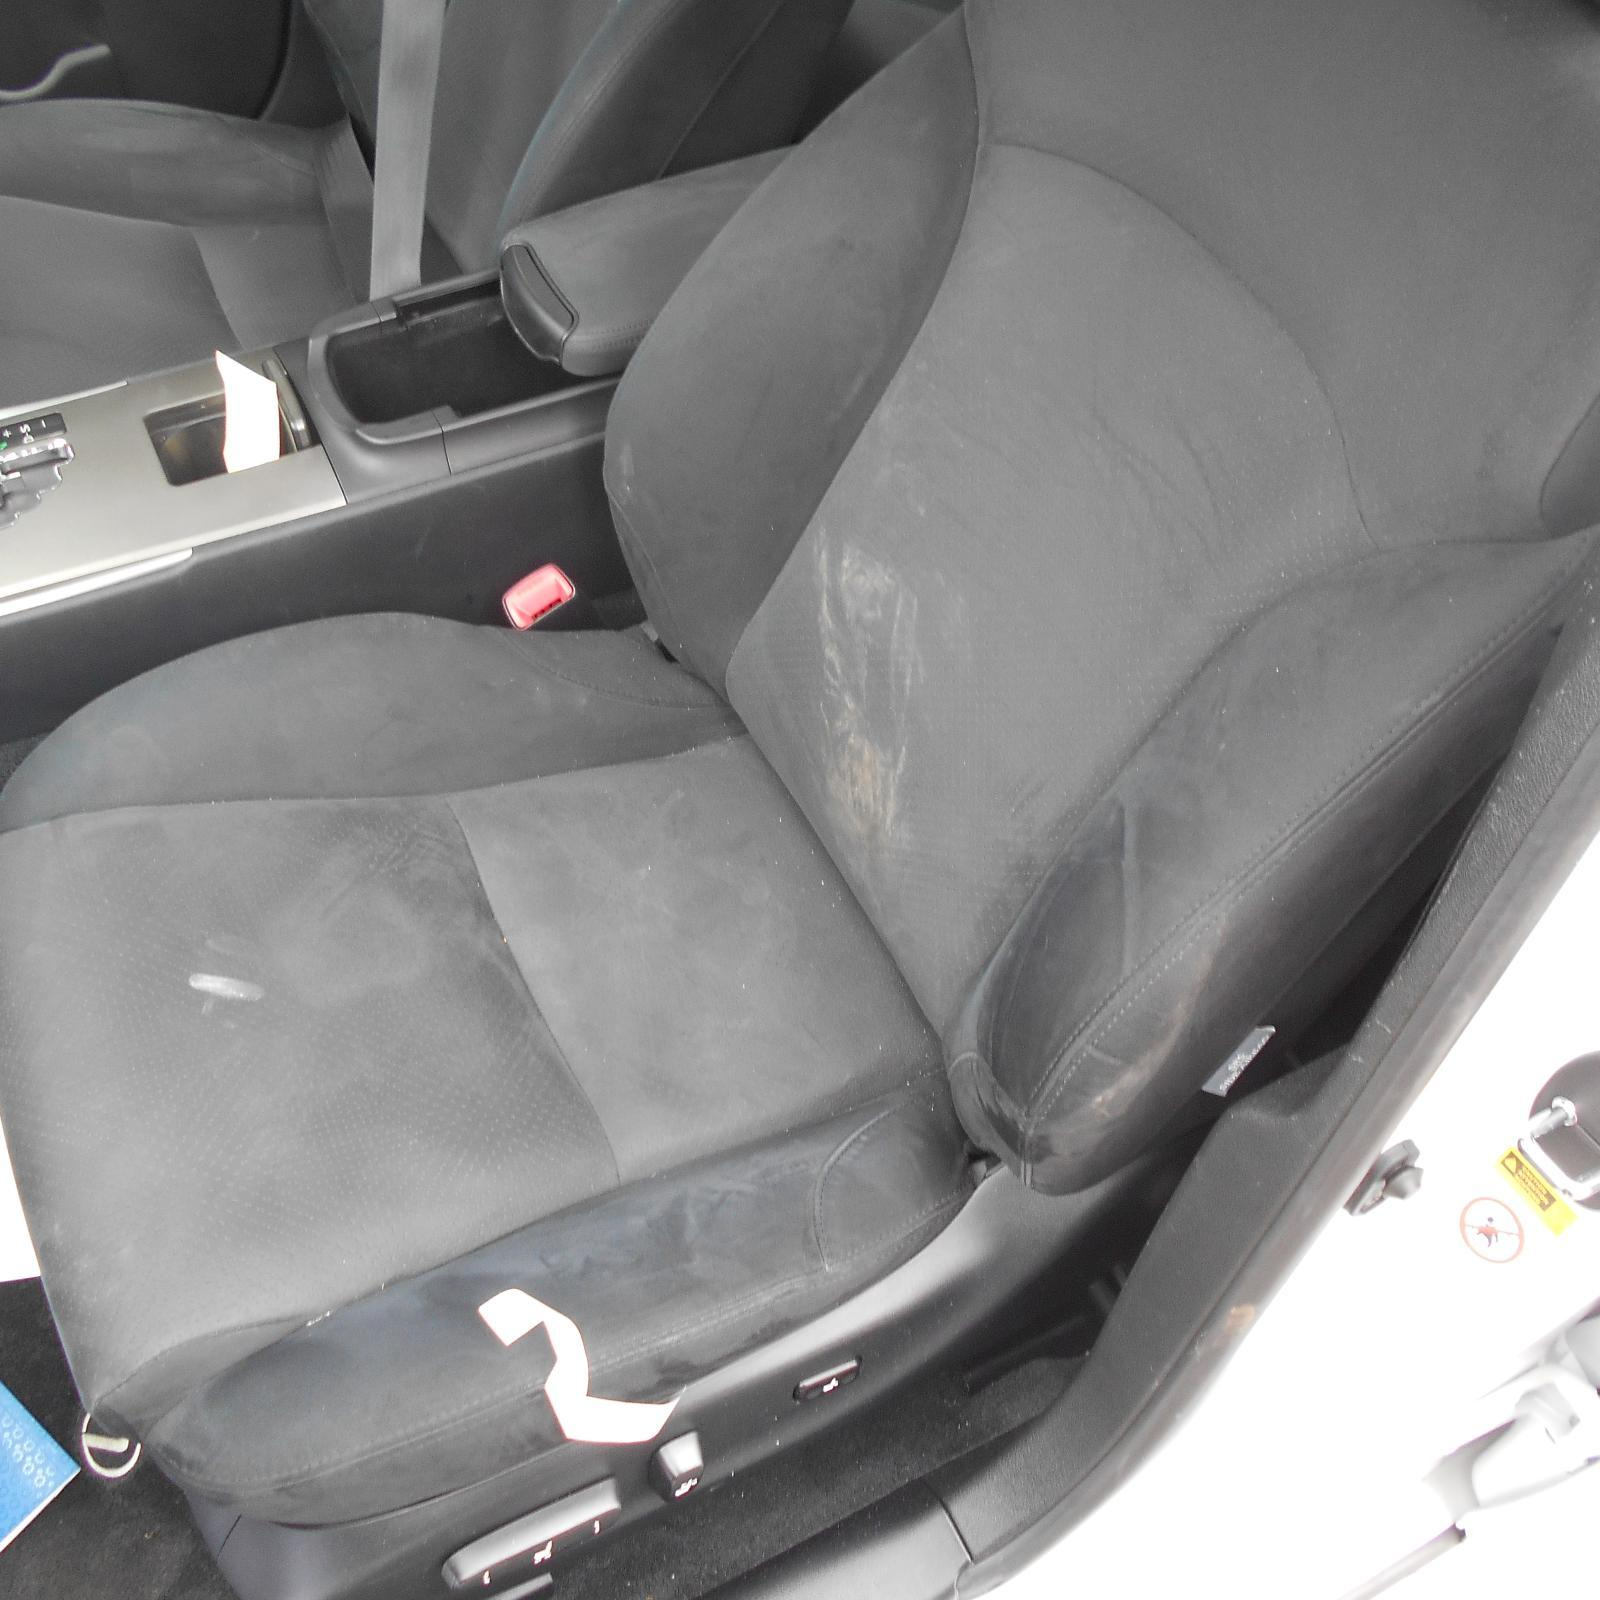 LEXUS IS250/IS250C, Front Seat, LH FRONT, GSE20R, IS250/IS350, CLOTH, GREY, 11/05-06/13